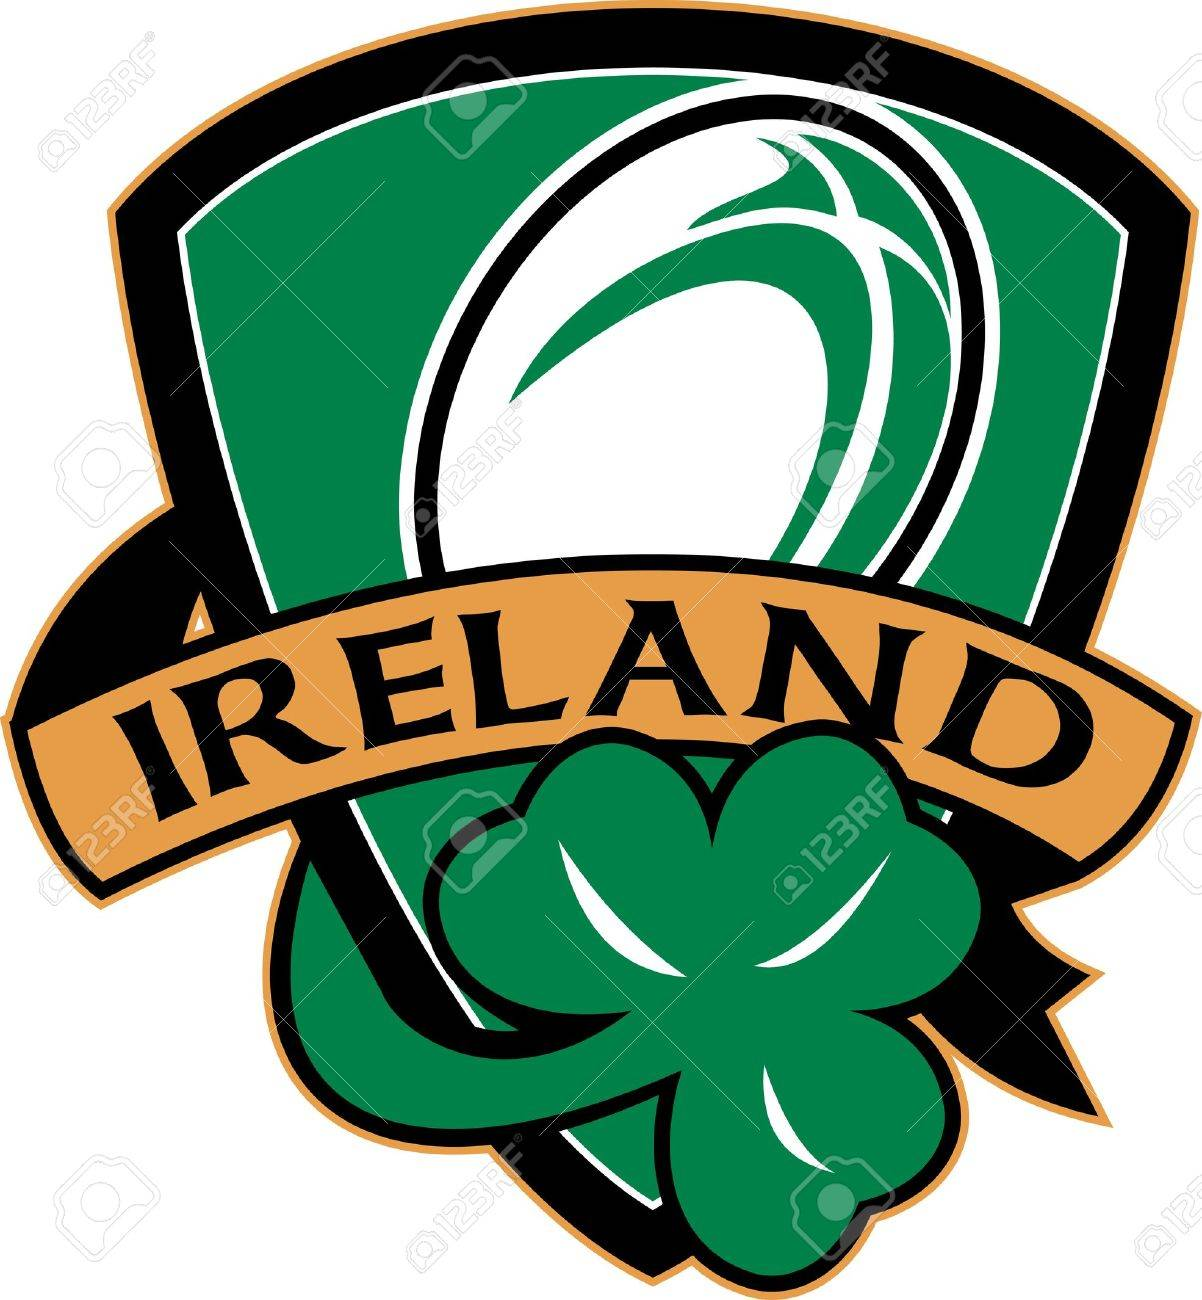 Illustration Of A Shield With Rugby Ball And Shamrock With Words